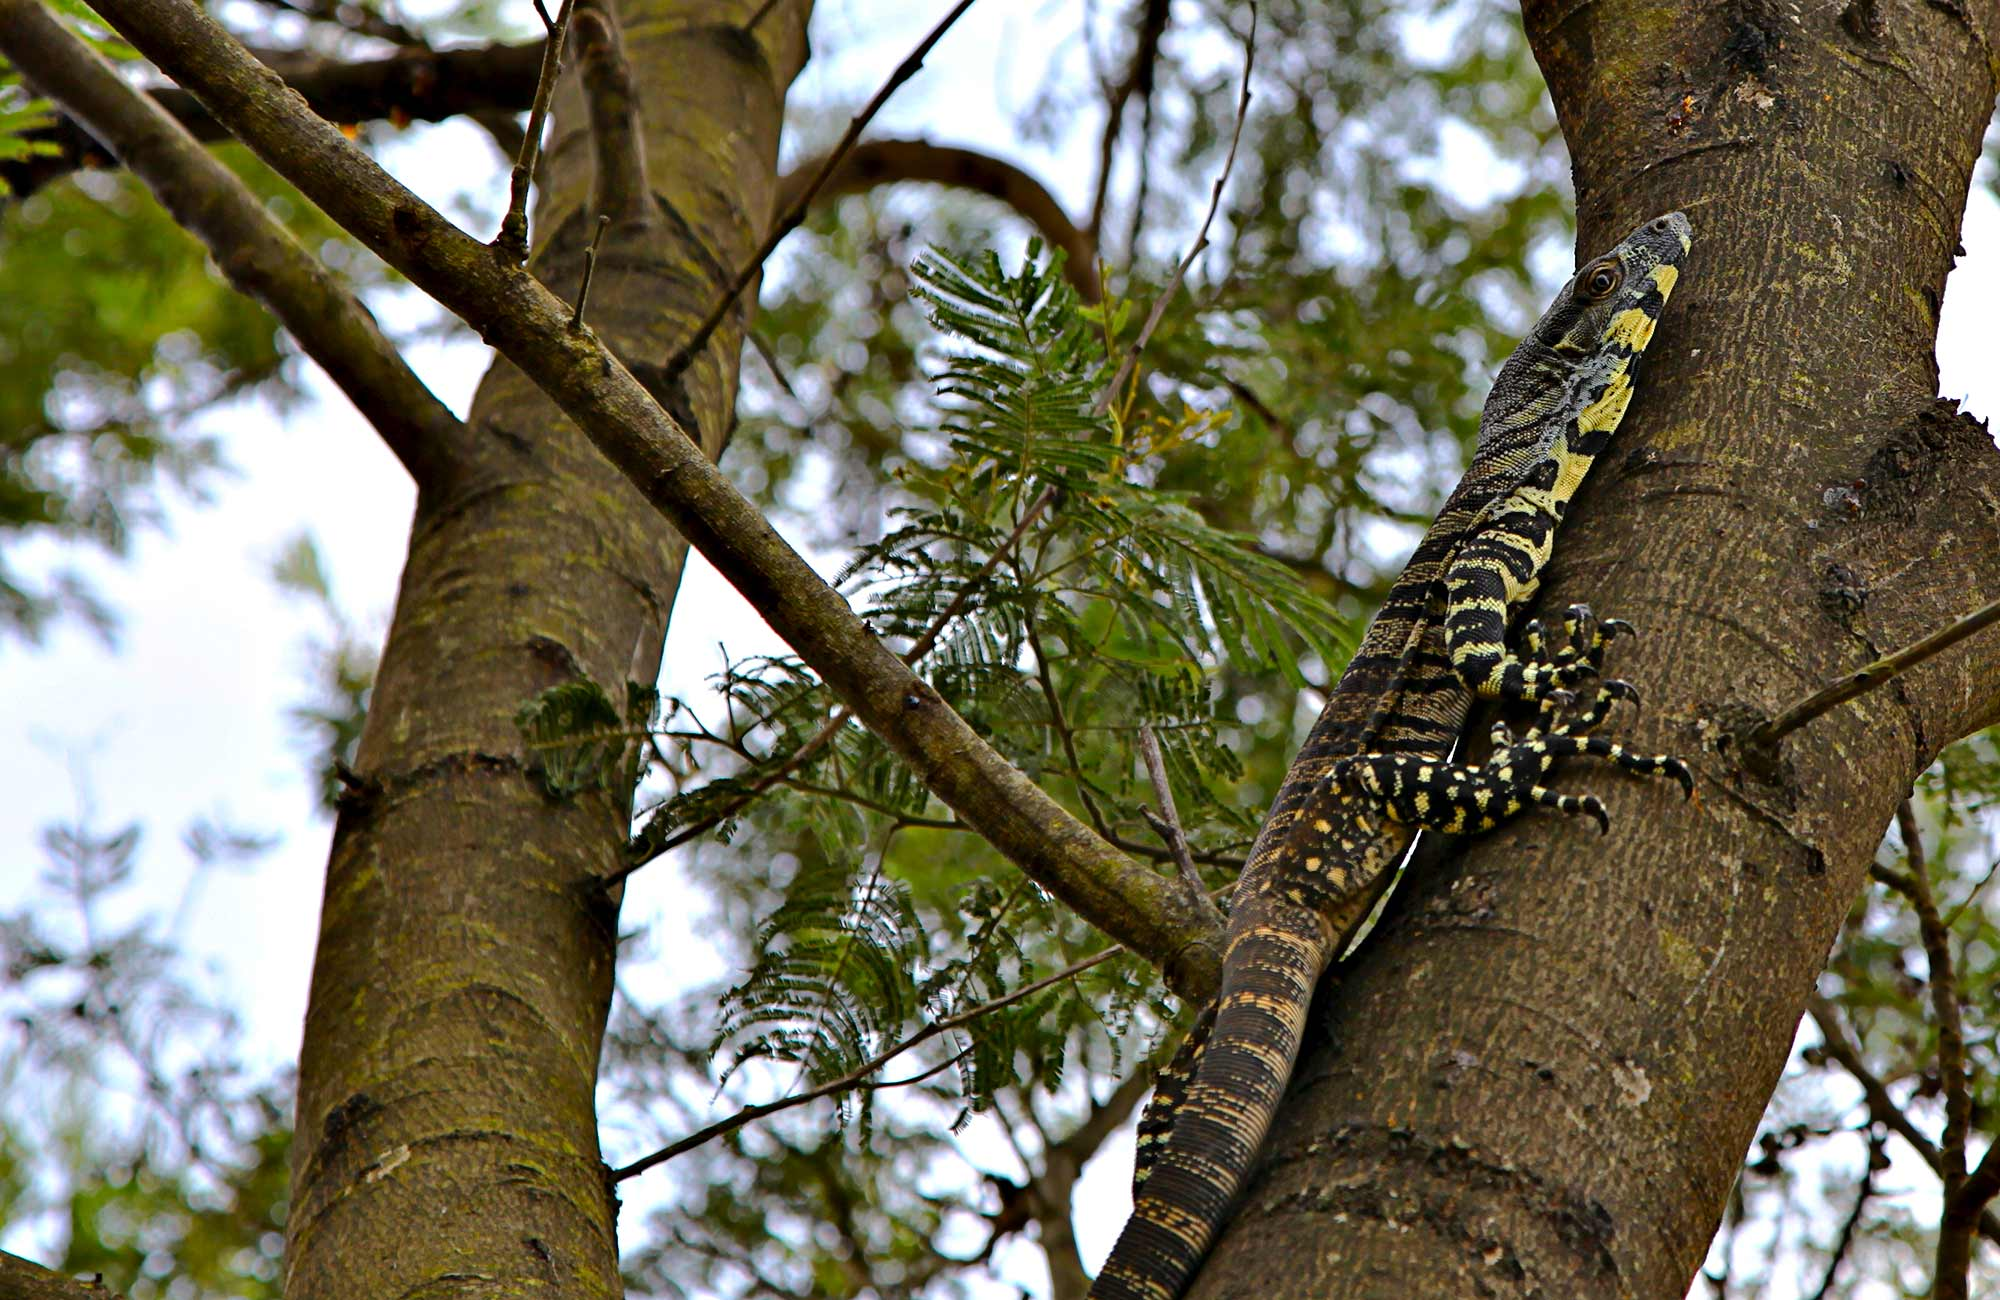 Goanna. Photo: Shaun Sursok